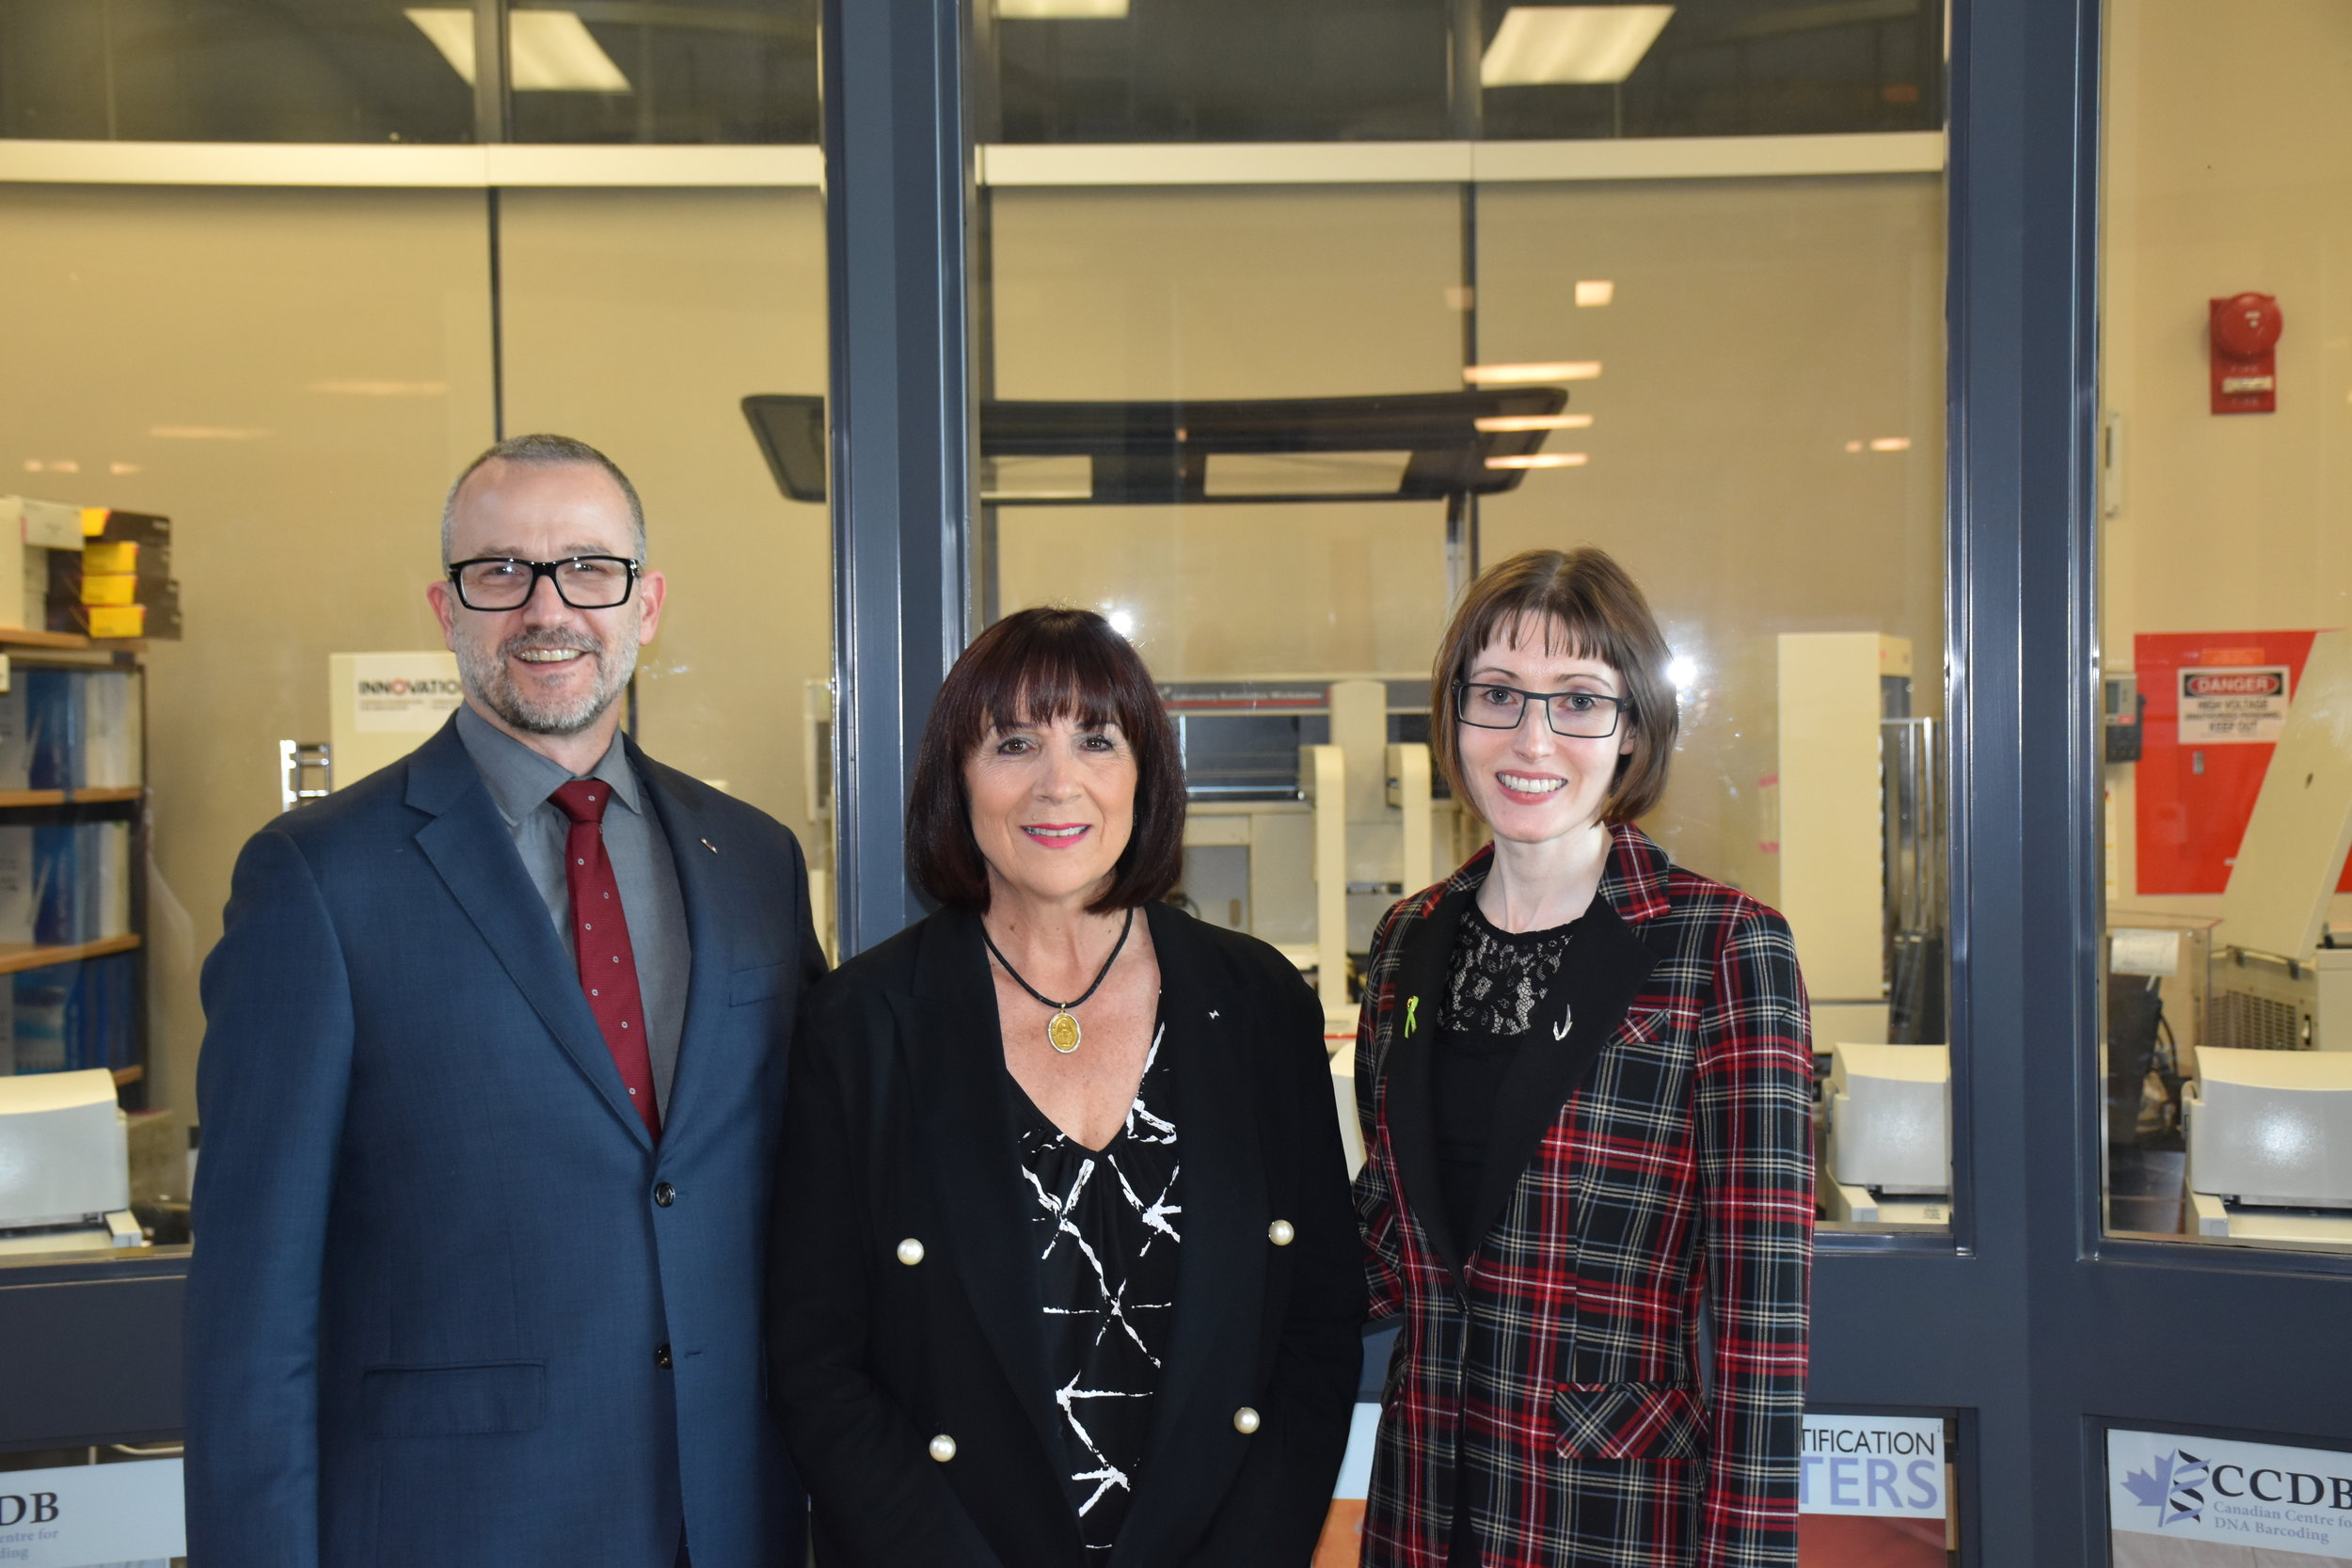 From left: College of Biological Sciences Dean Dr. Jonathan Newman, Rossana Magnotta, and Dr. Melanie Wills. Photo: Kevin Golsalves, University of Guelph.